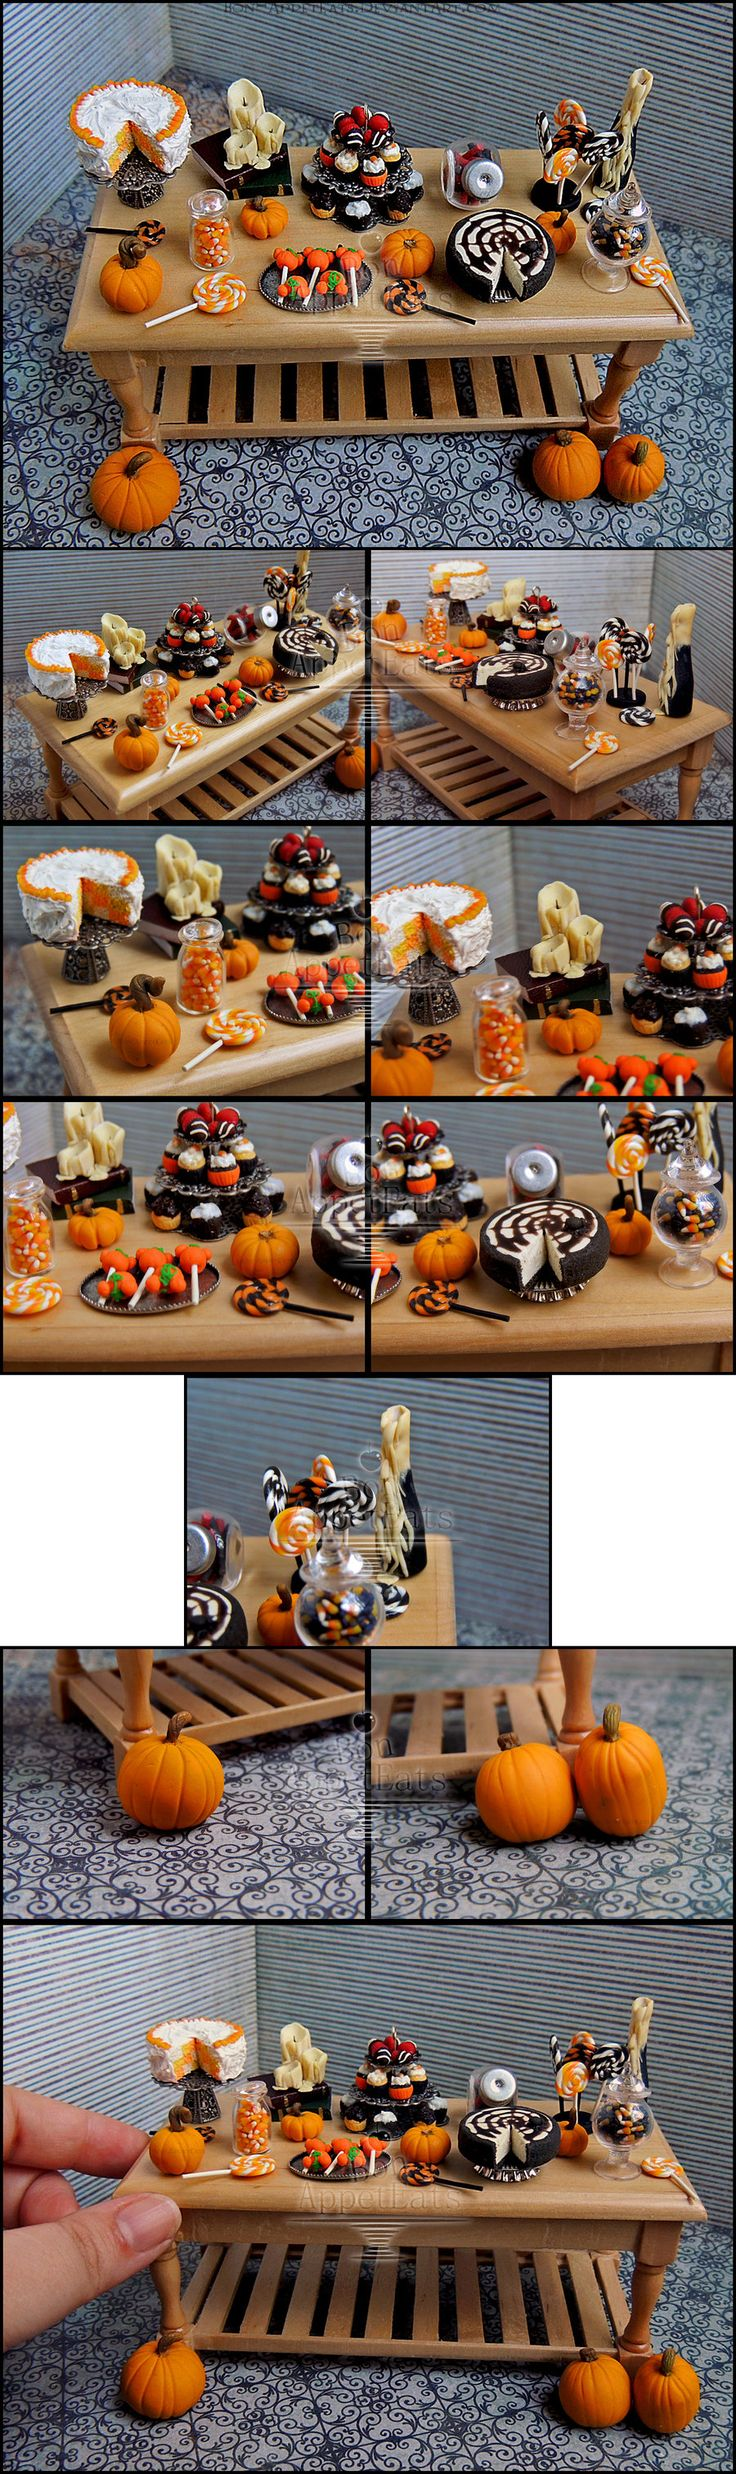 1:12 Halloween Table Details by Bon-AppetEats.deviantart.com on @deviantART